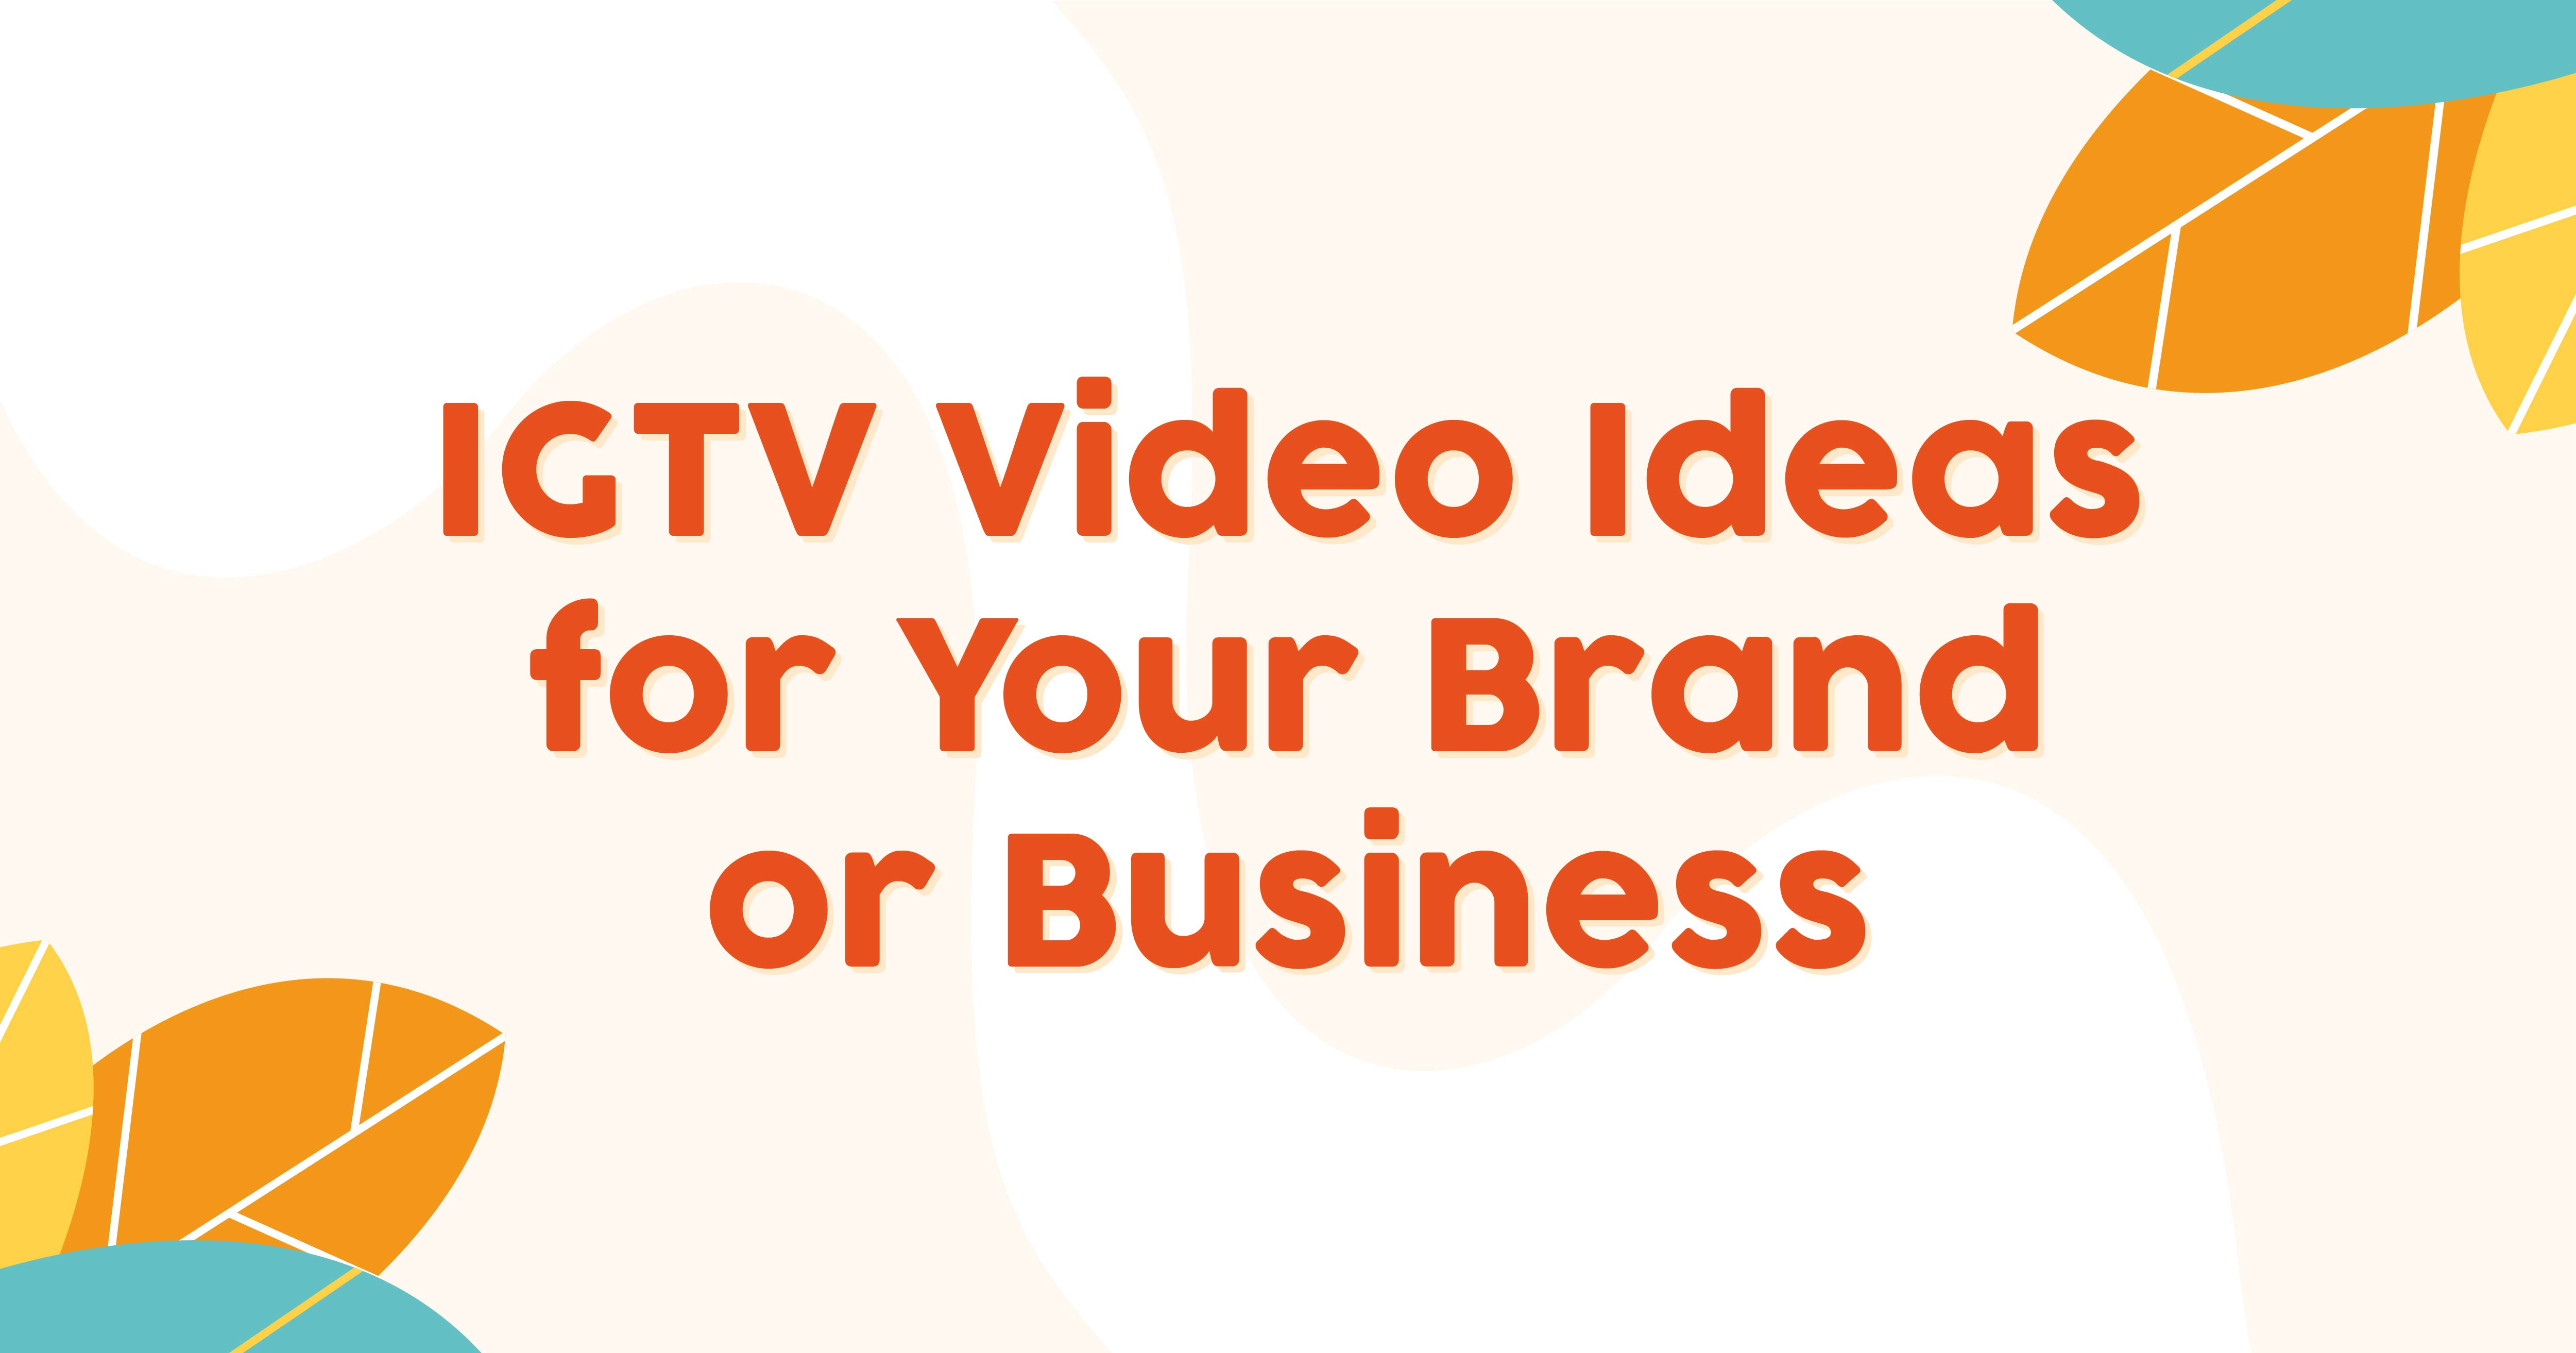 IGTV Video Ideas for Your Brand or Business